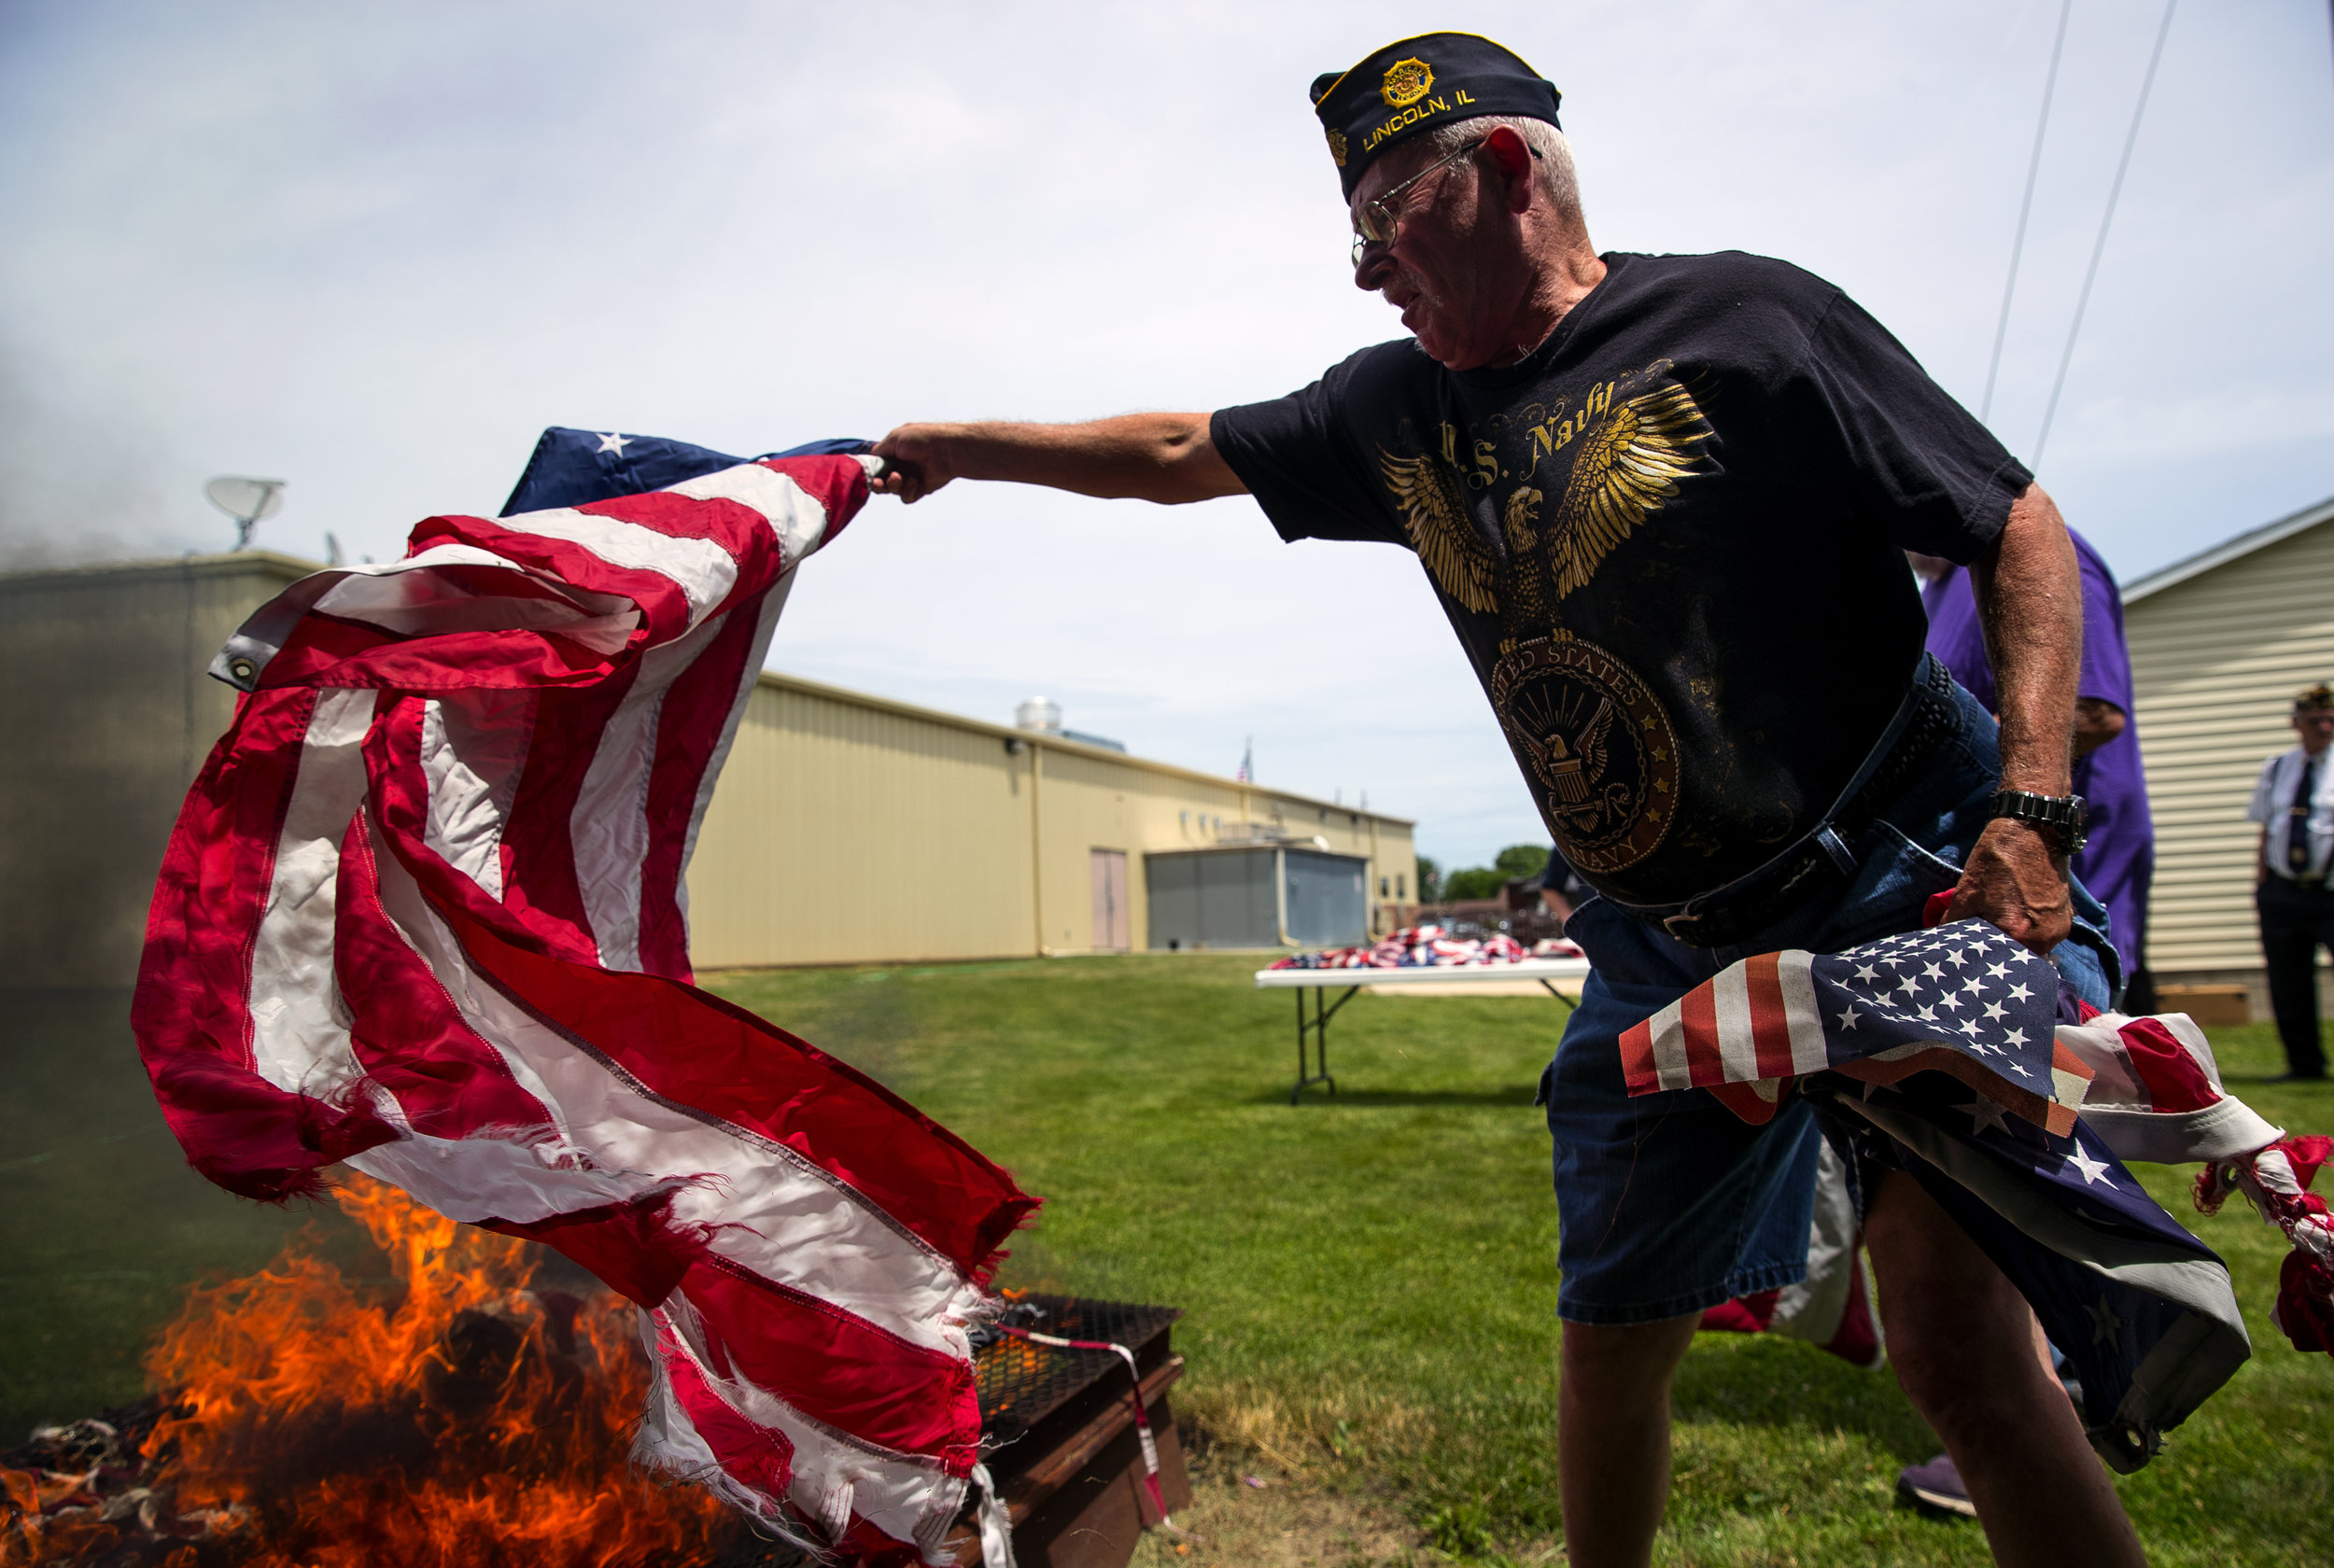 Dave Young adds a U.S. flag to the fire during a flag disposal ceremony hosted by American Legion Post 263 and the Lincoln Chapter of the Daughters of the American Revolution Thursday, June 14, 2018. Thursday was also Flag Day and commemorates the 1777 resolution by the Continental Congress calling for the creation of the United States flag. [Ted Schurter/The State Journal-Register]